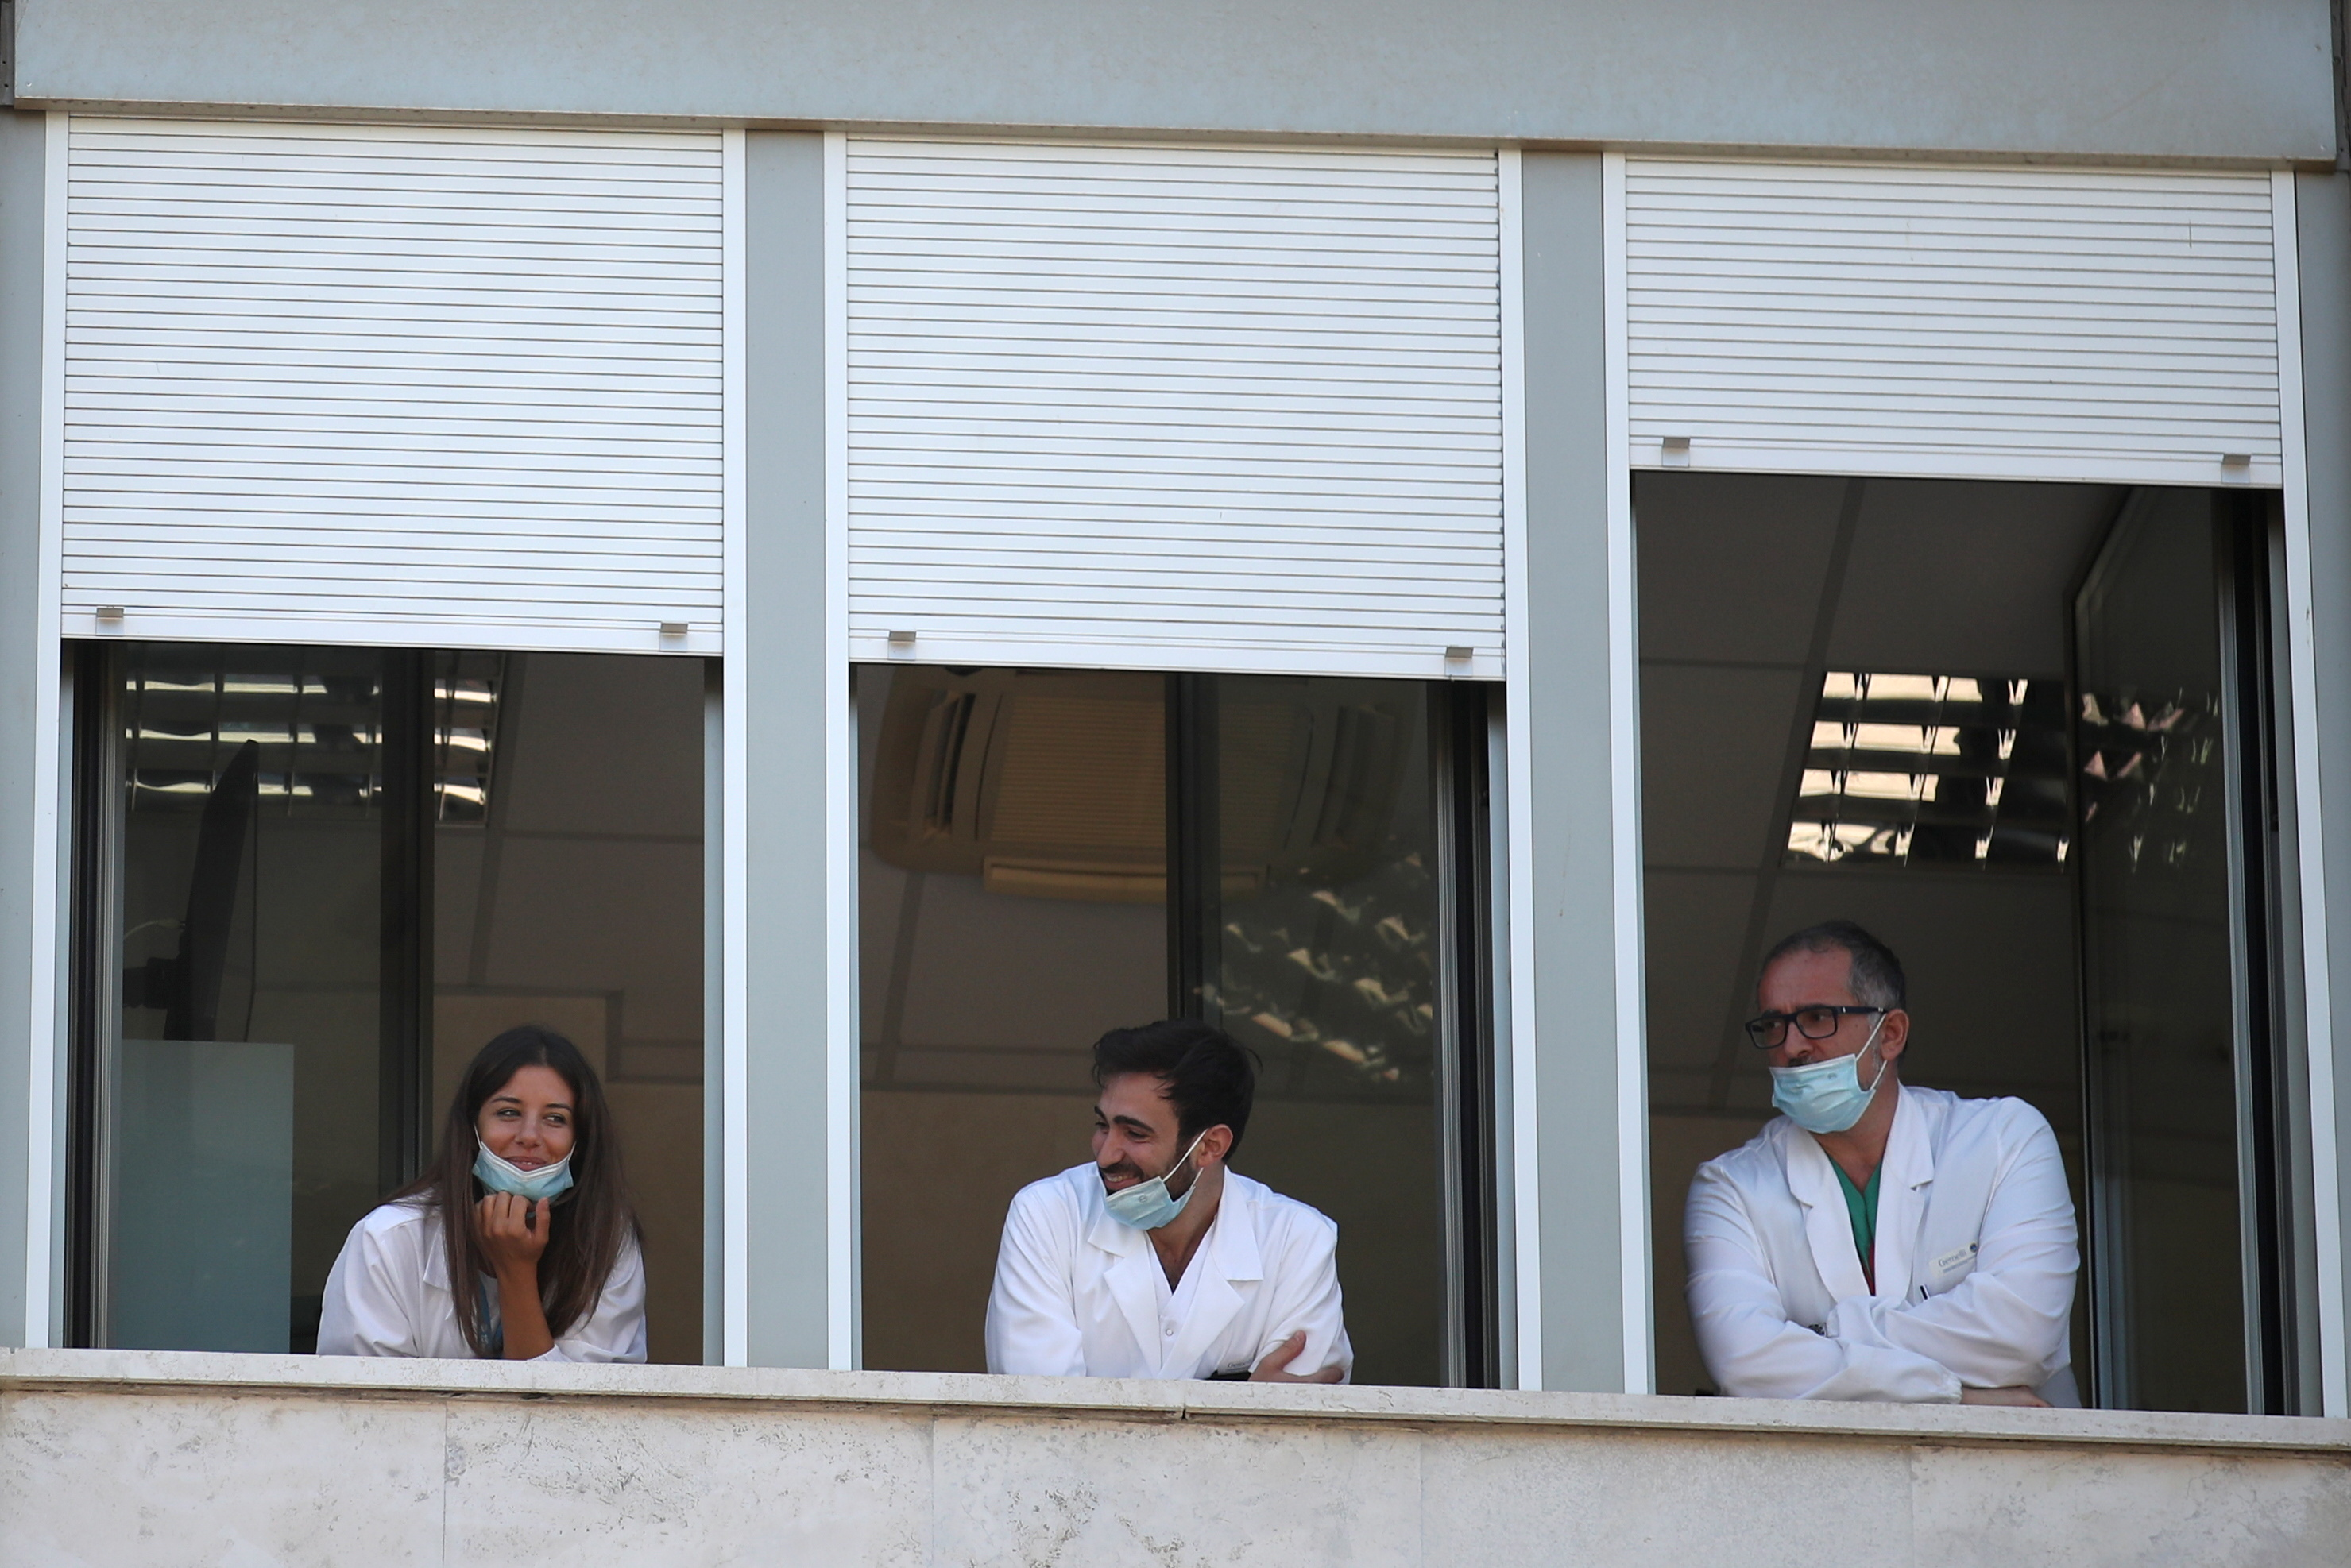 Healthcare workers look out the windows of the Gemelli hospital, from where Pope Francis is expected to lead the Angelus prayer, as he recovers following scheduled surgery on his colon, in Rome, Italy, July 11, 2021. REUTERS/Yara Nardi